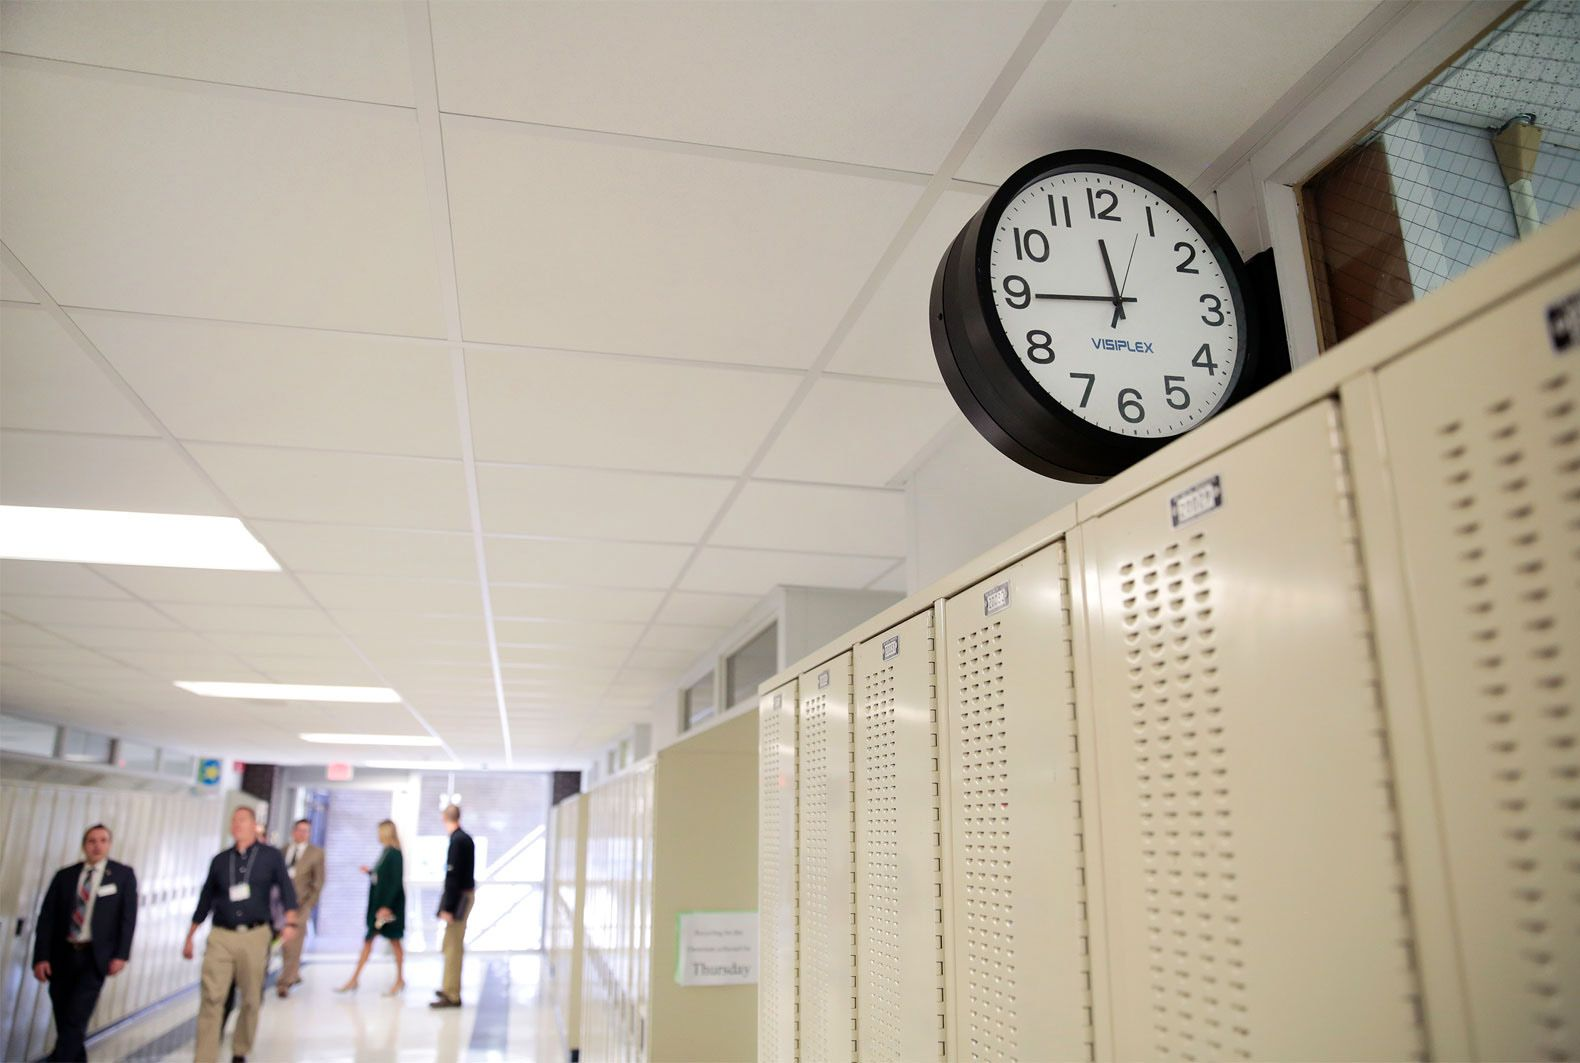 Visiting administrators and educators walk the halls of West Leyden High School during one of the district's biannual technology tours, open to school leaders from anywhere in the country.